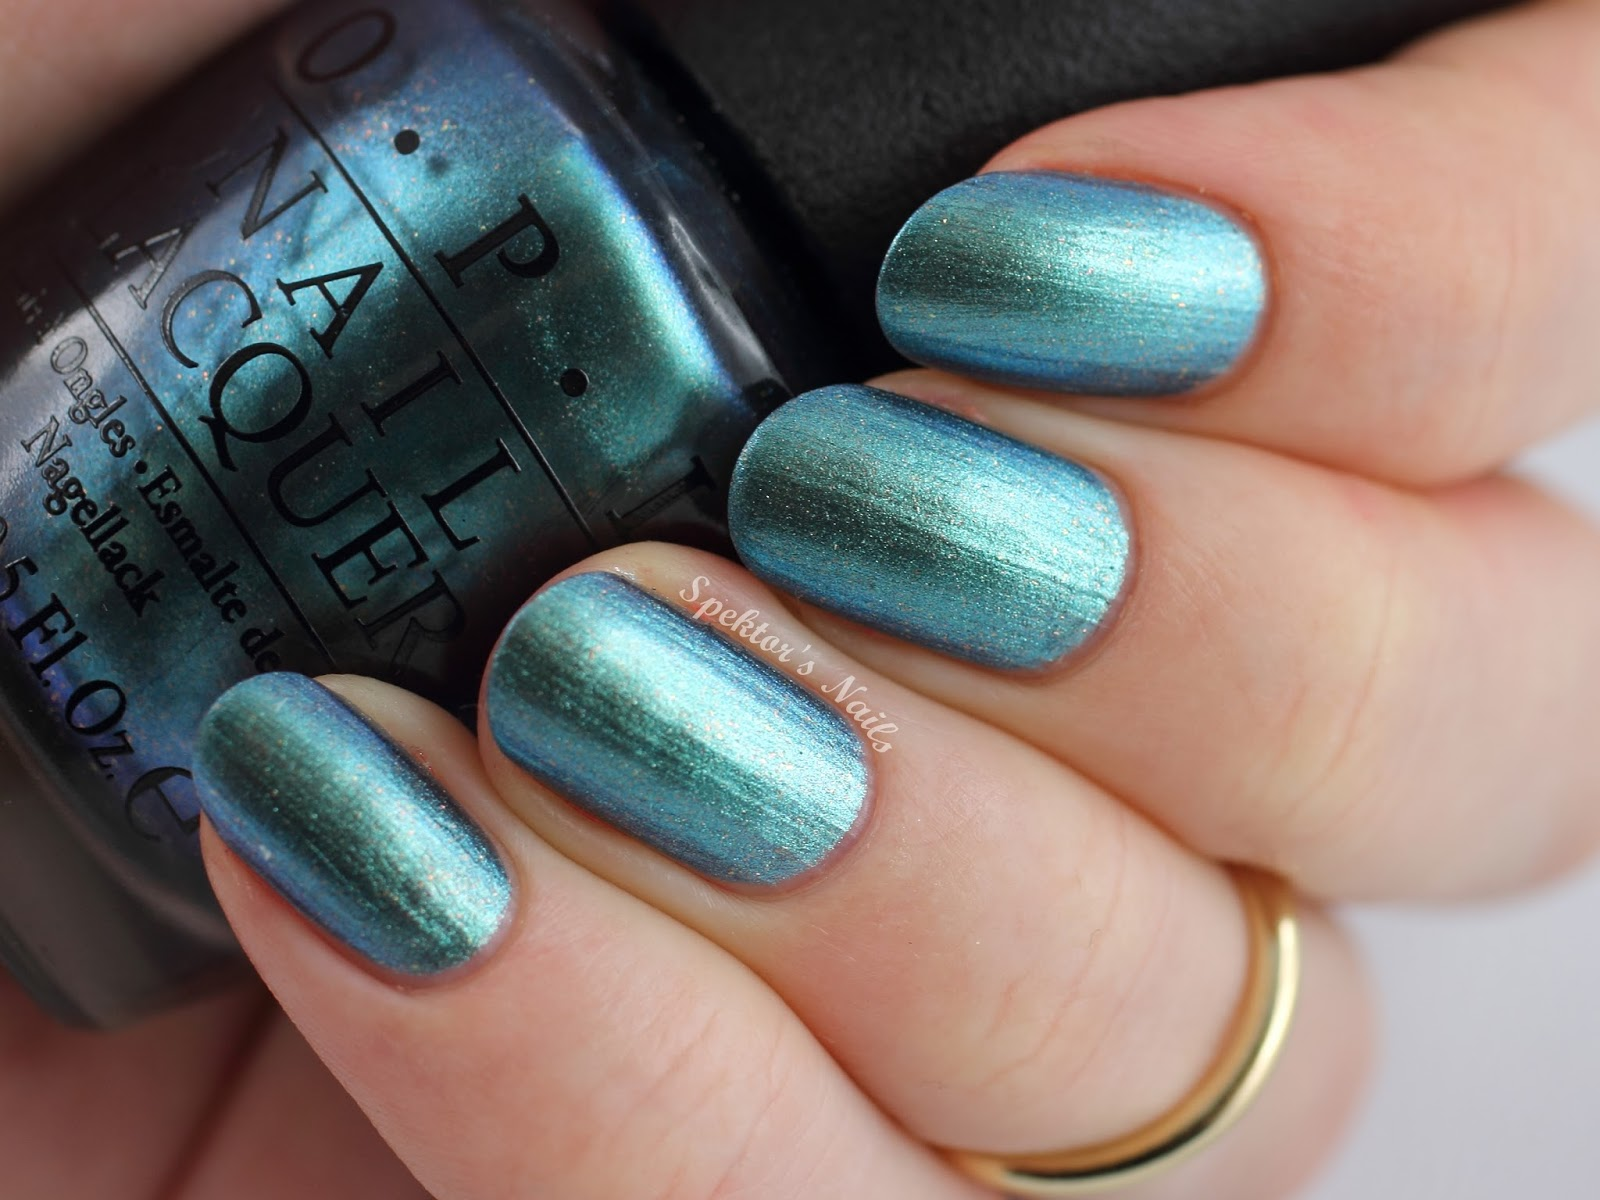 OPI Hawaii - This Color's Making Waves